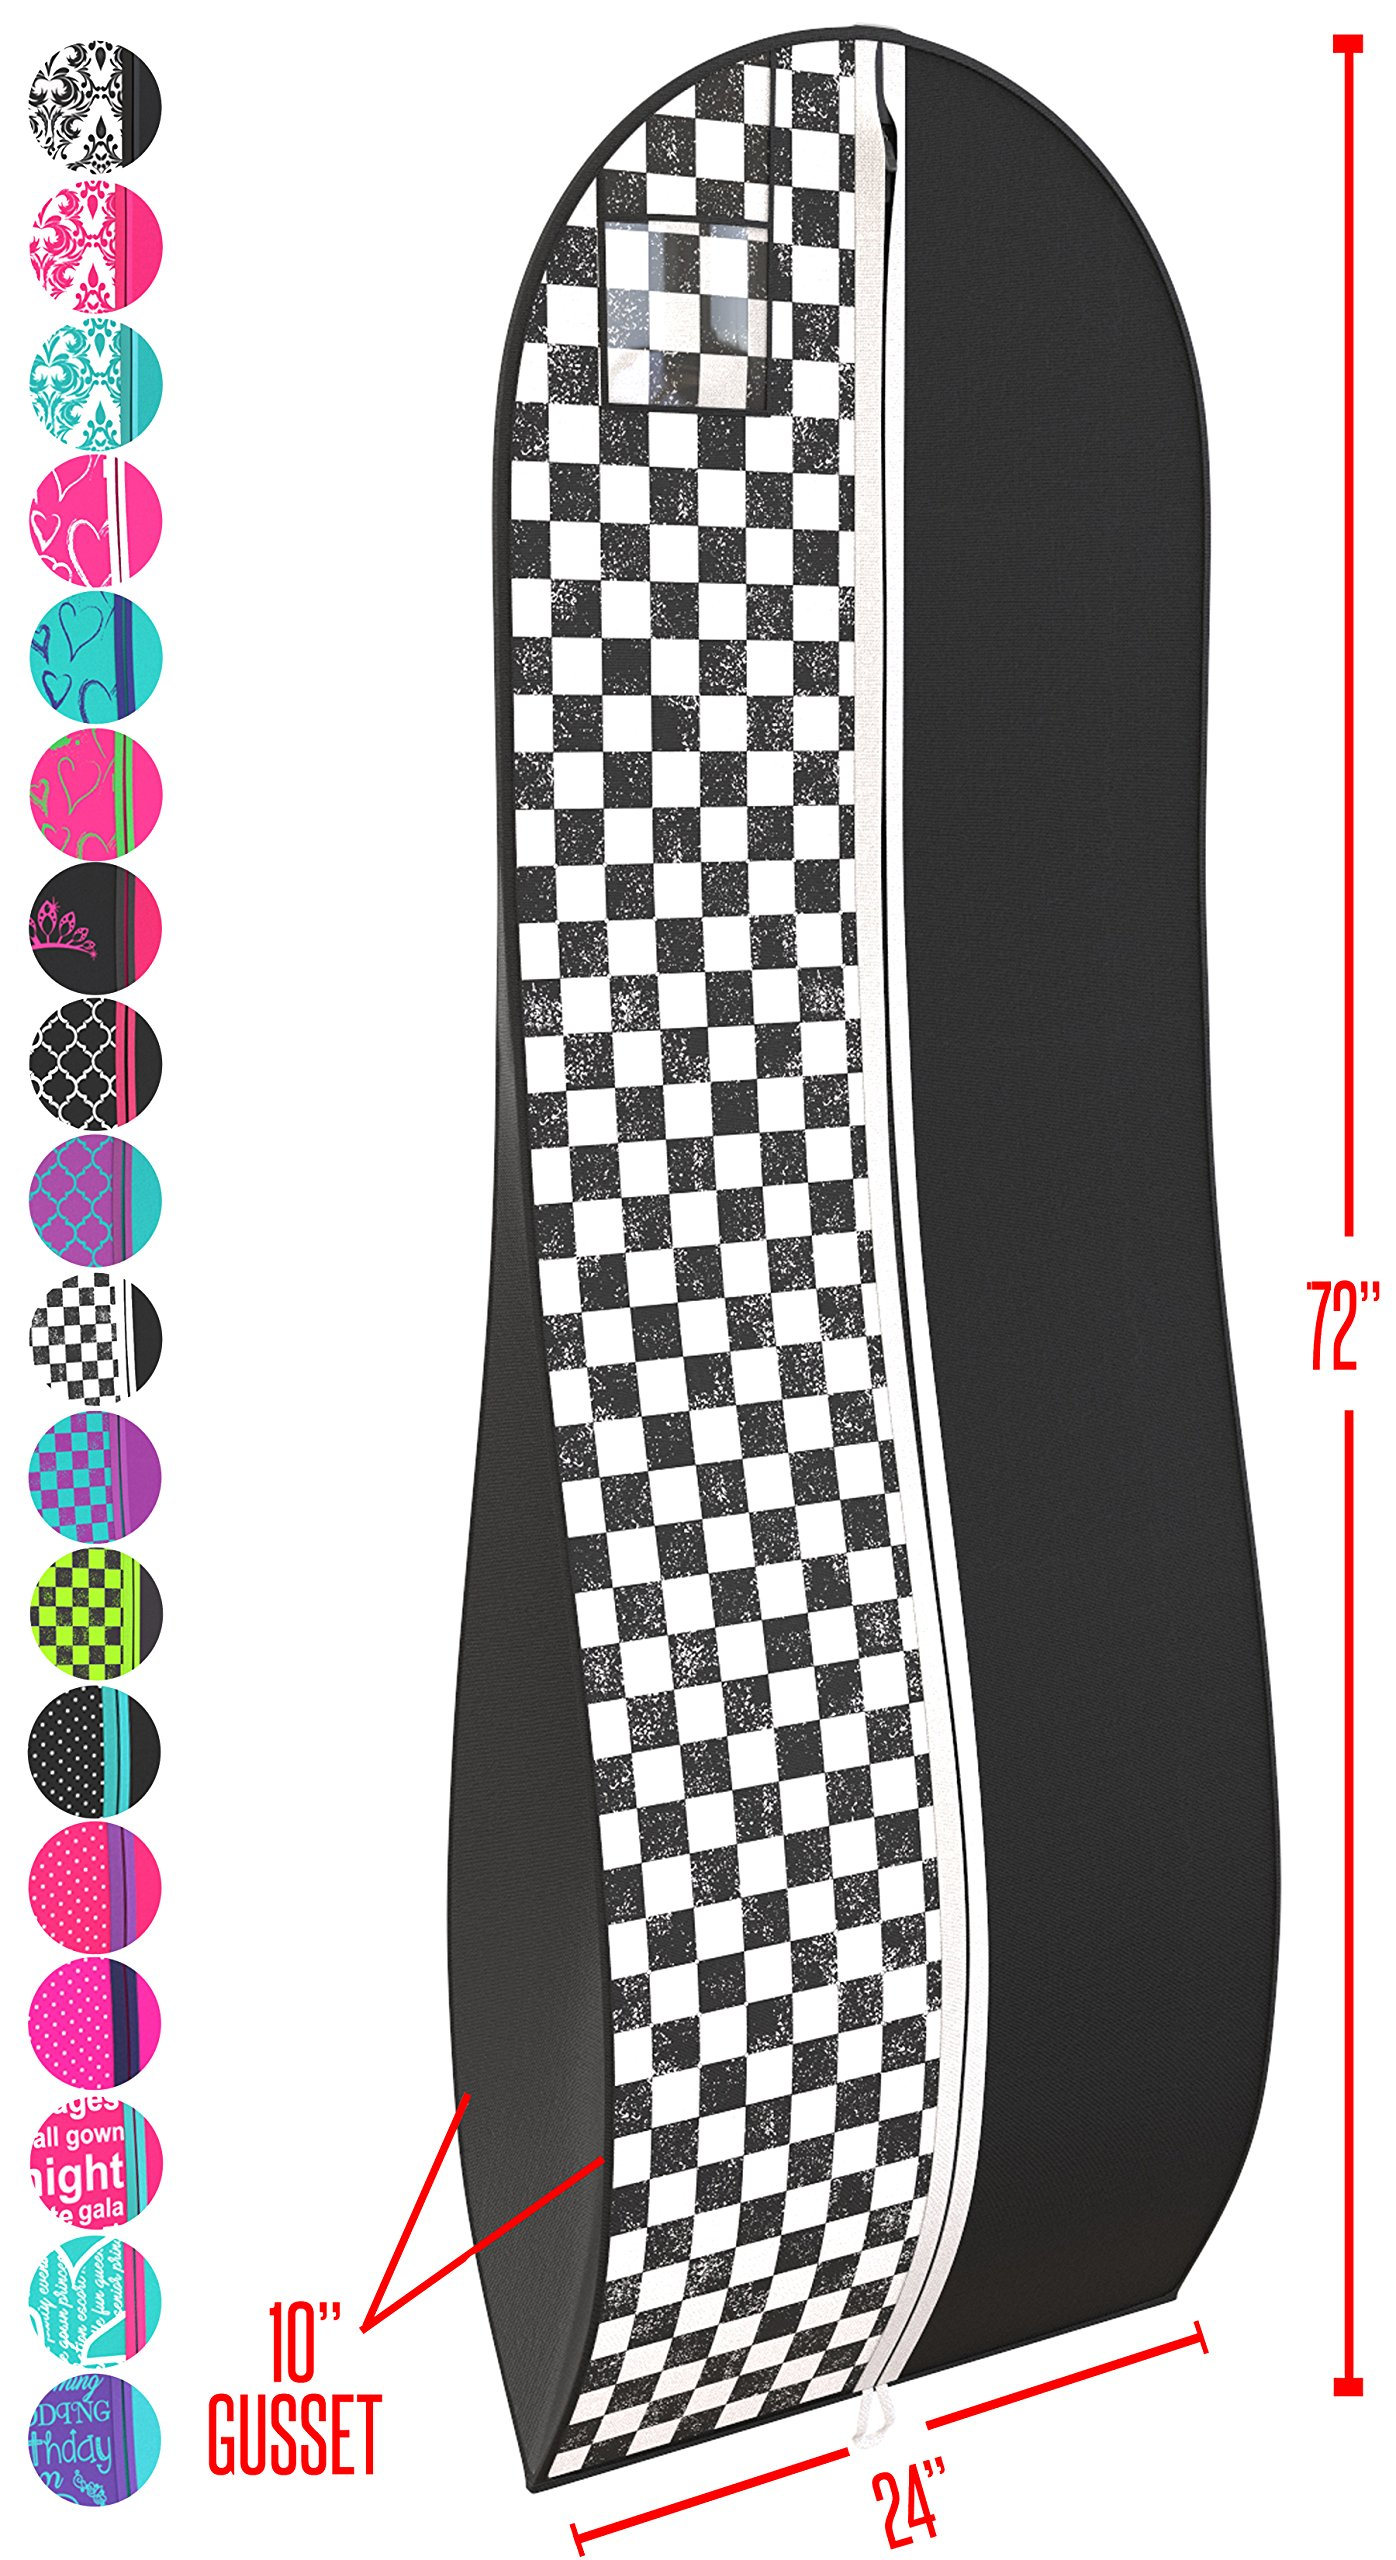 """Gusseted Gown Garment Bag for Women's Prom and Bridal Wedding Dresses - Travel Folding Loop, ID Window-72"""" x 24"""" with 10"""" Tapered Gusset - Black and White Checkered - by Your Bags"""